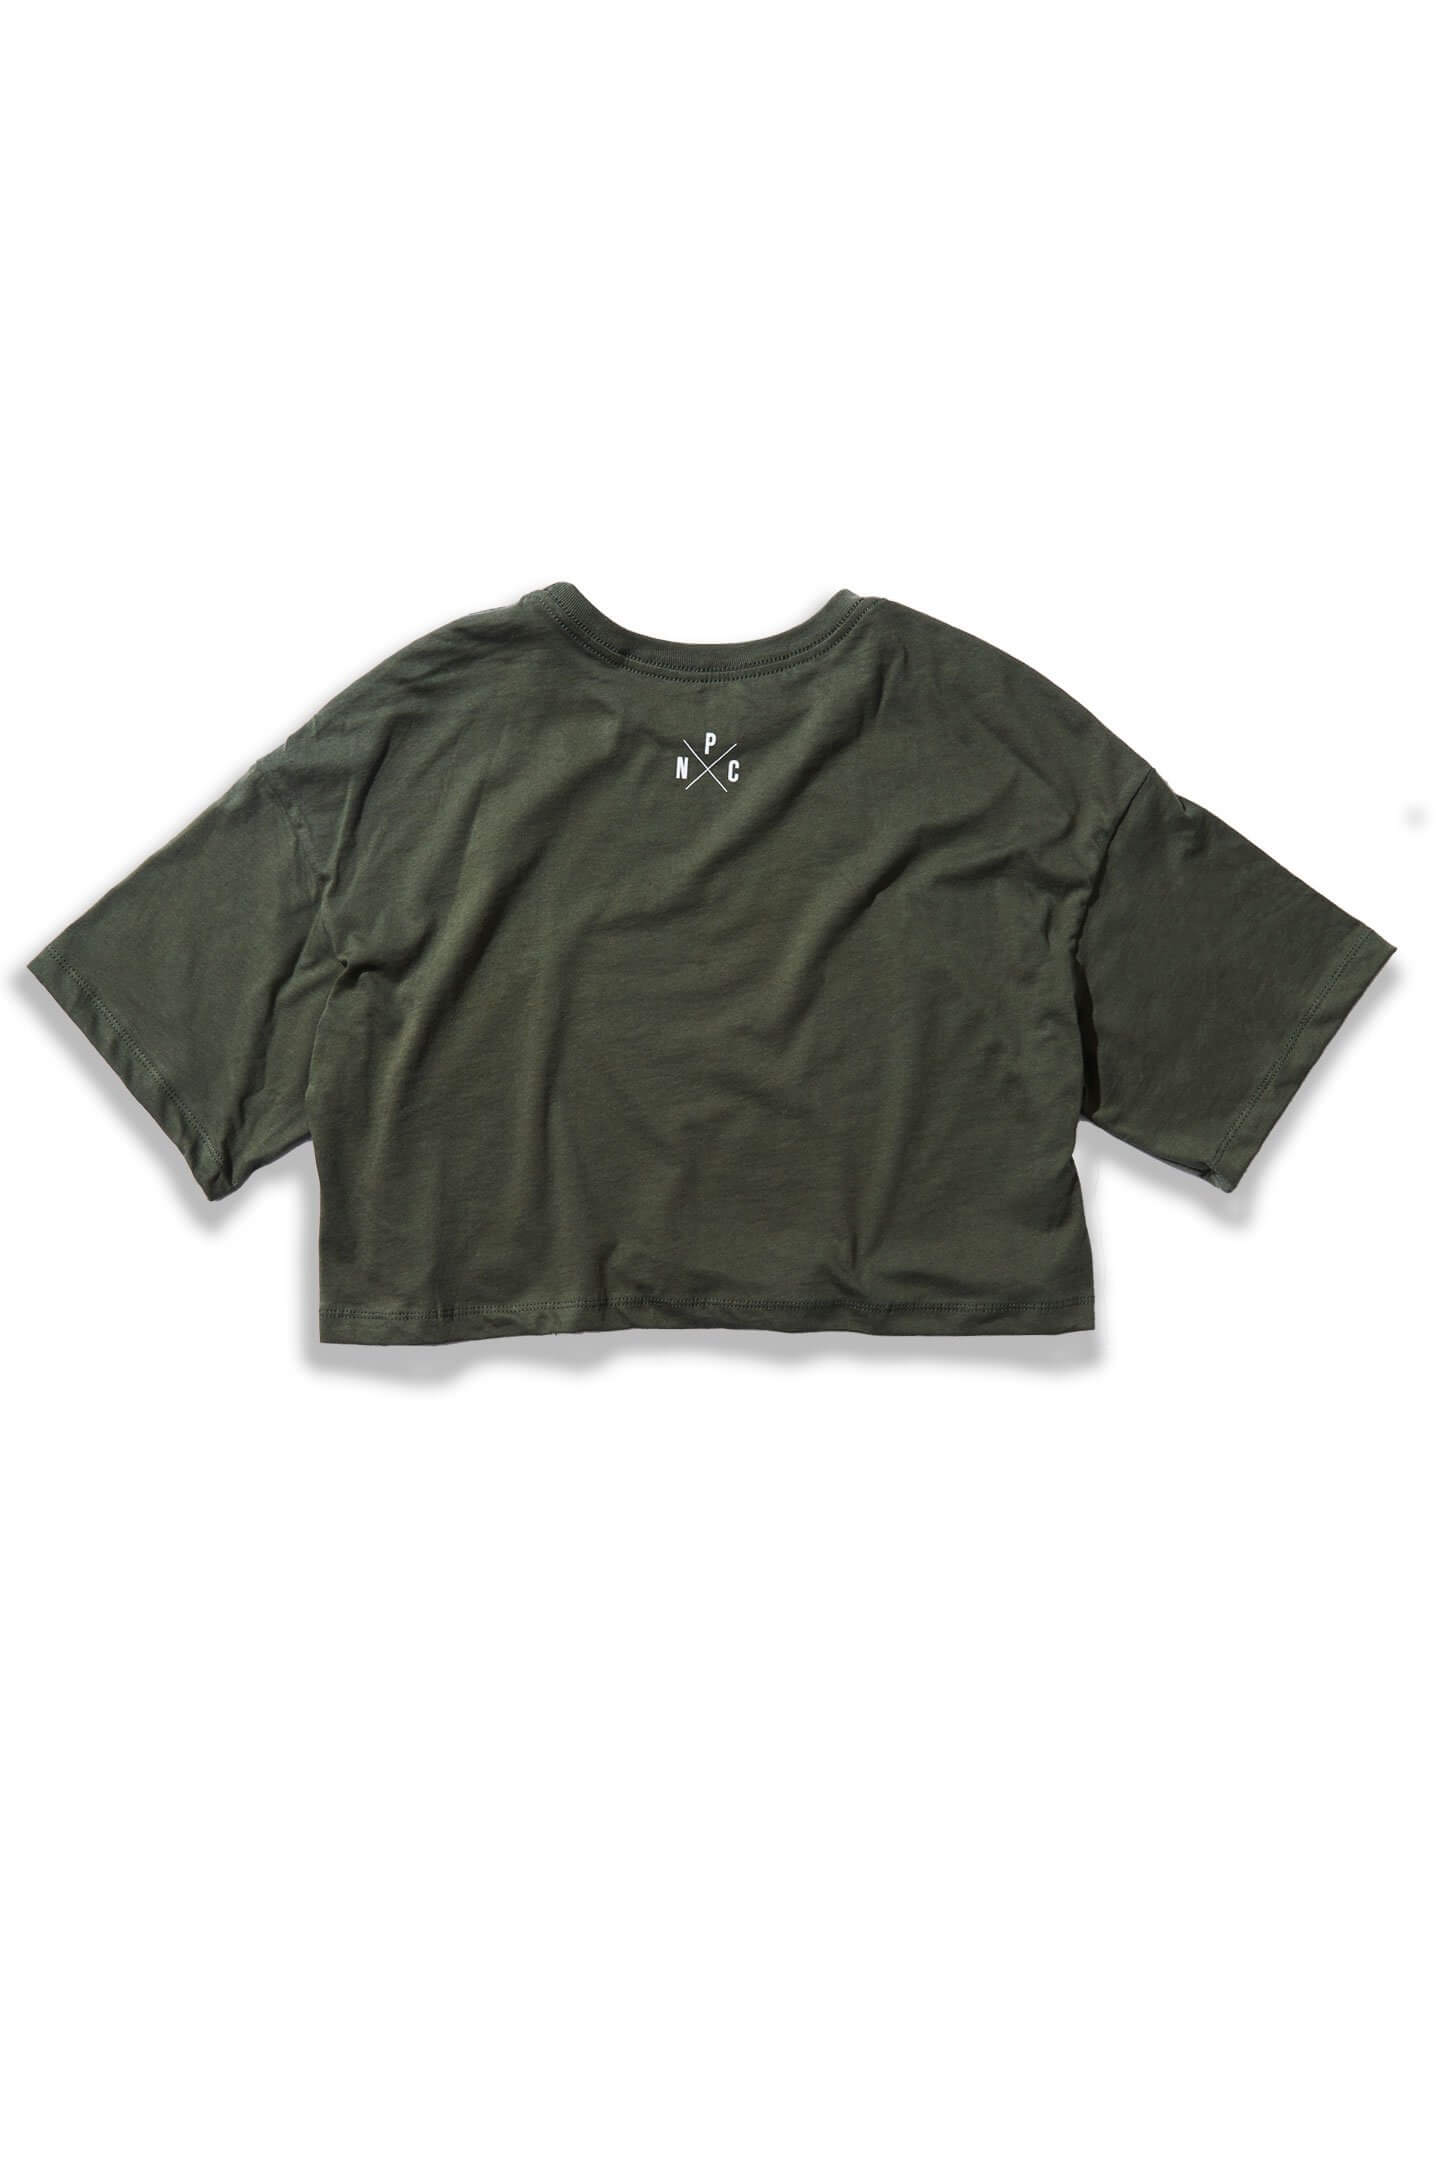 OVERSIZED MUAY THAI CROP TEE - OLIVE